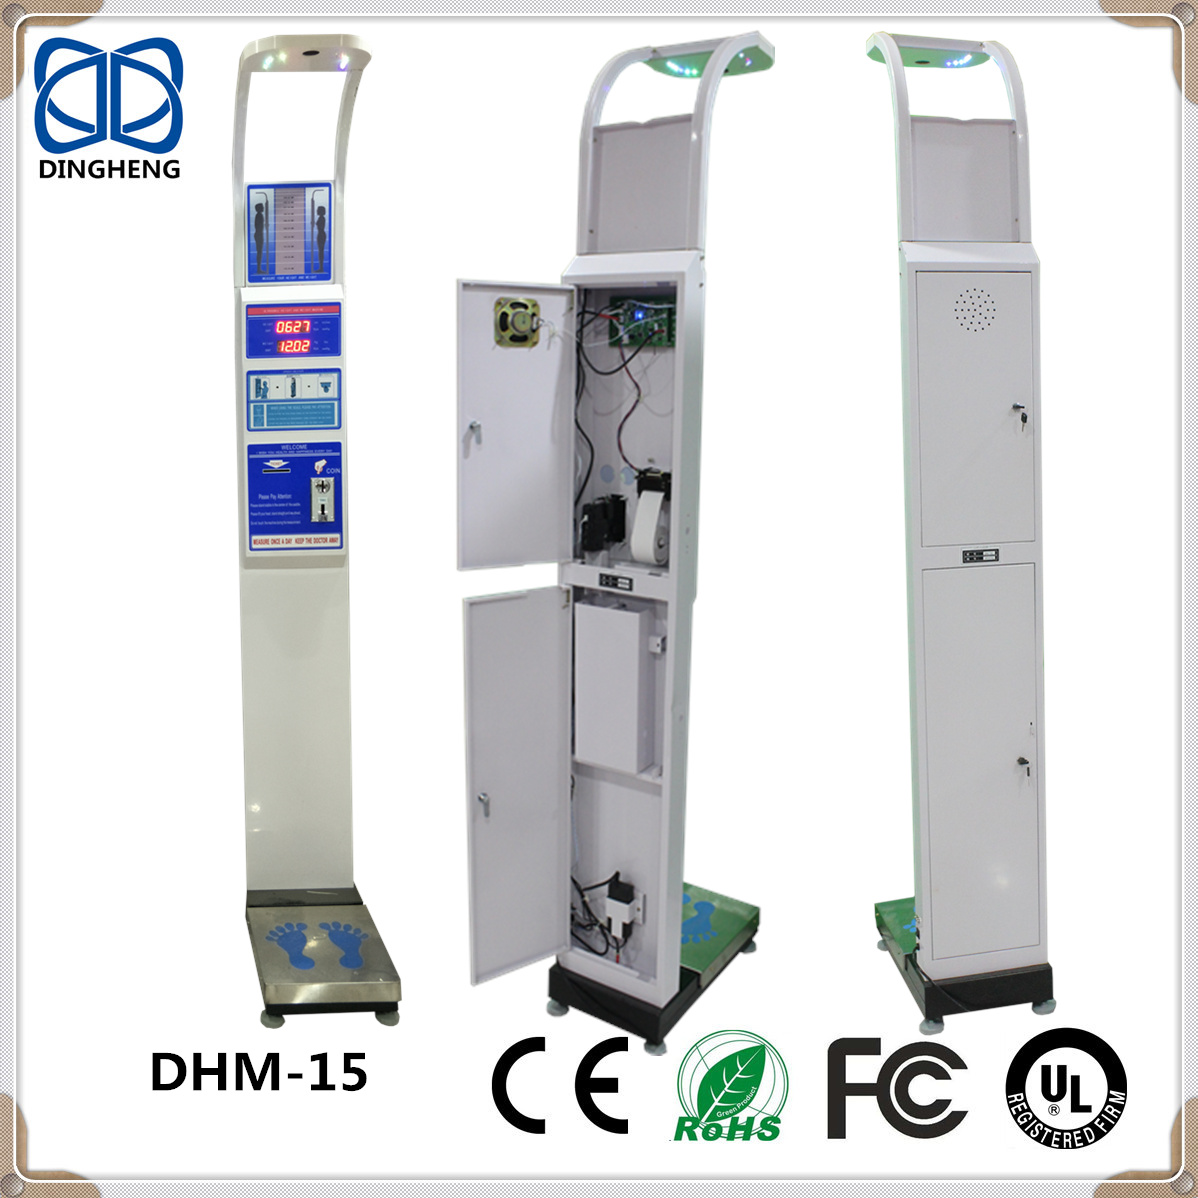 DHM-15 Digital Body Fat Analyzer eletronic weight weighing Scale with BMI function supply